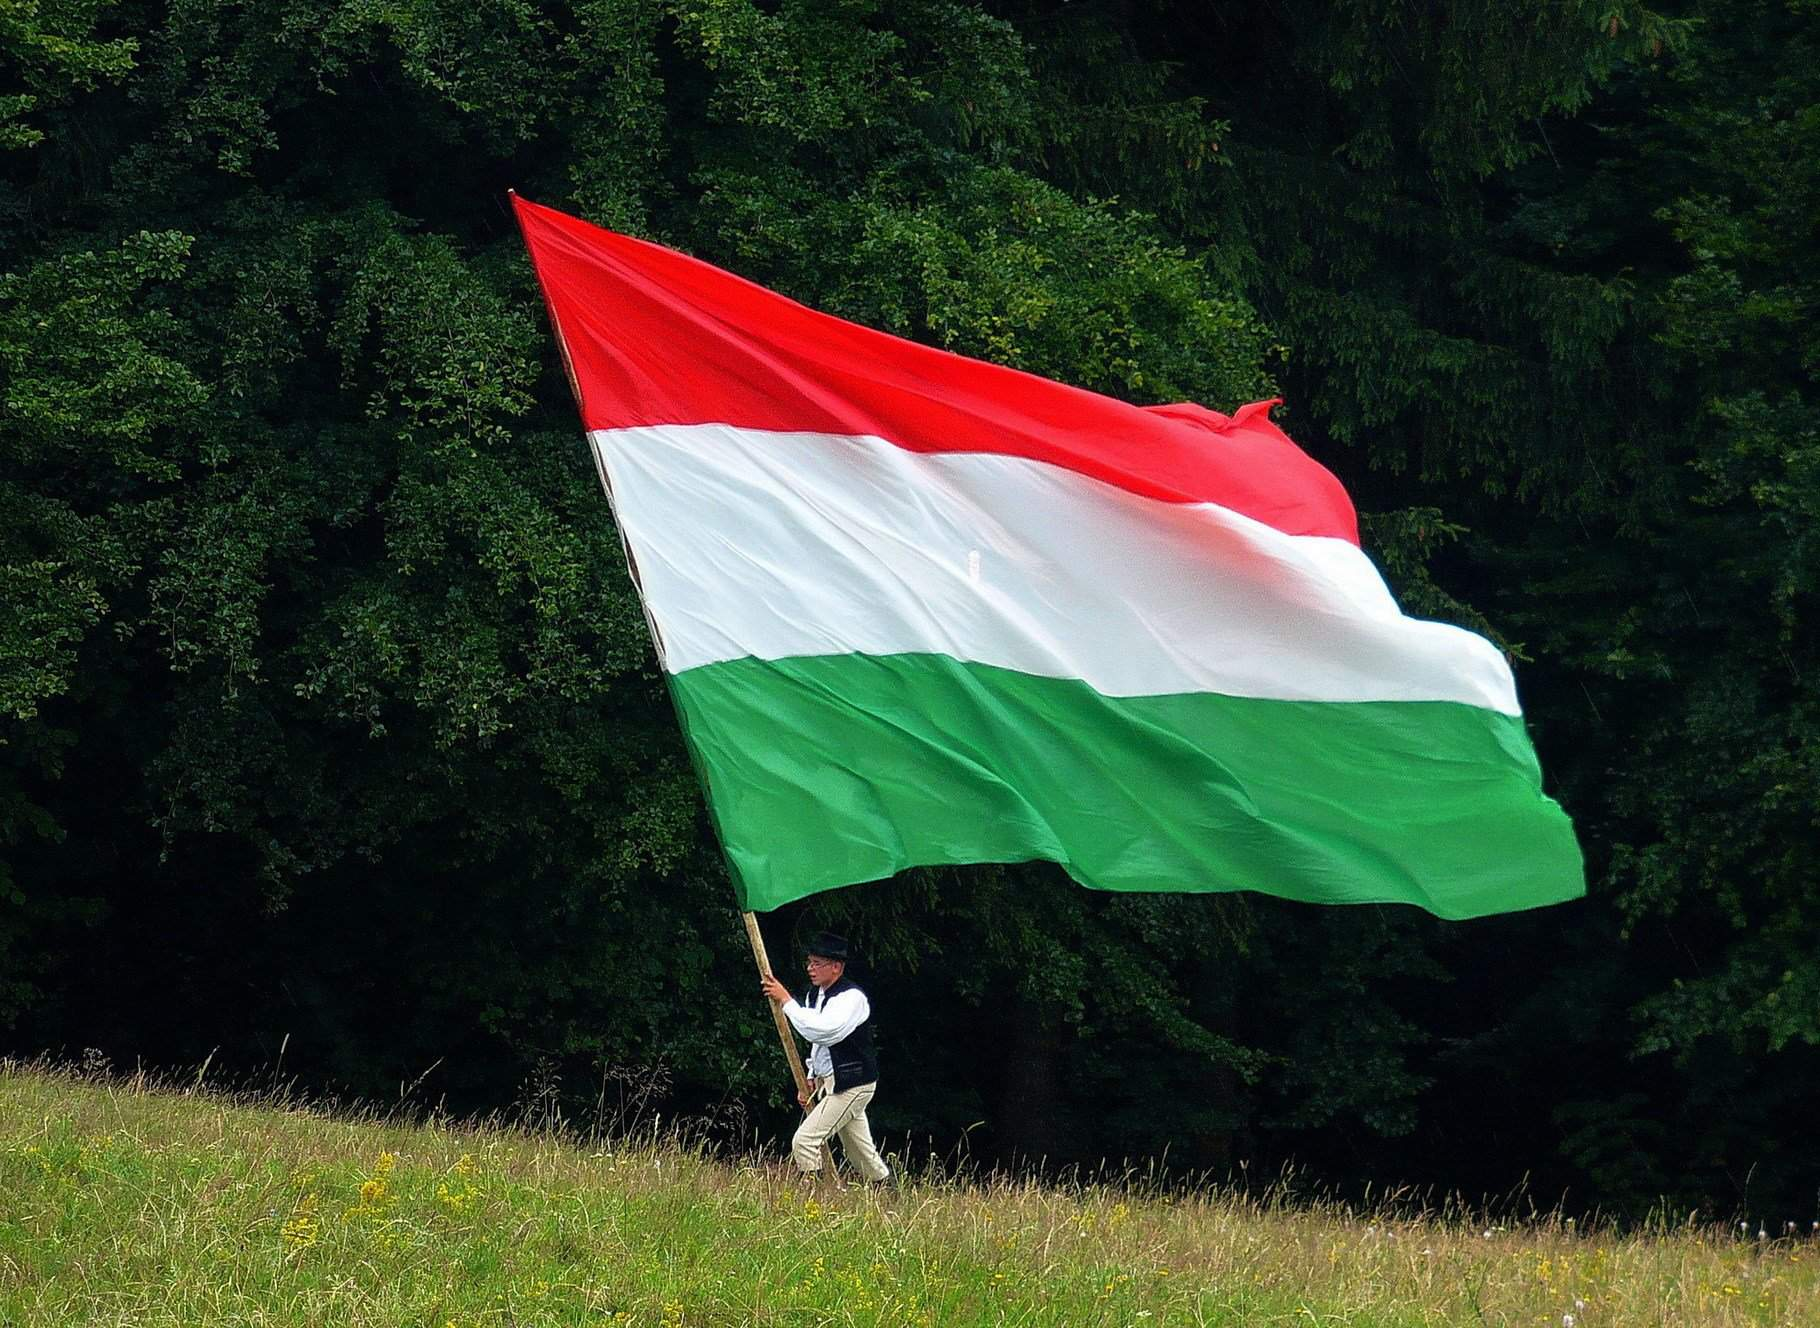 It's official: Hungarian is one of the most difficult languages in the world